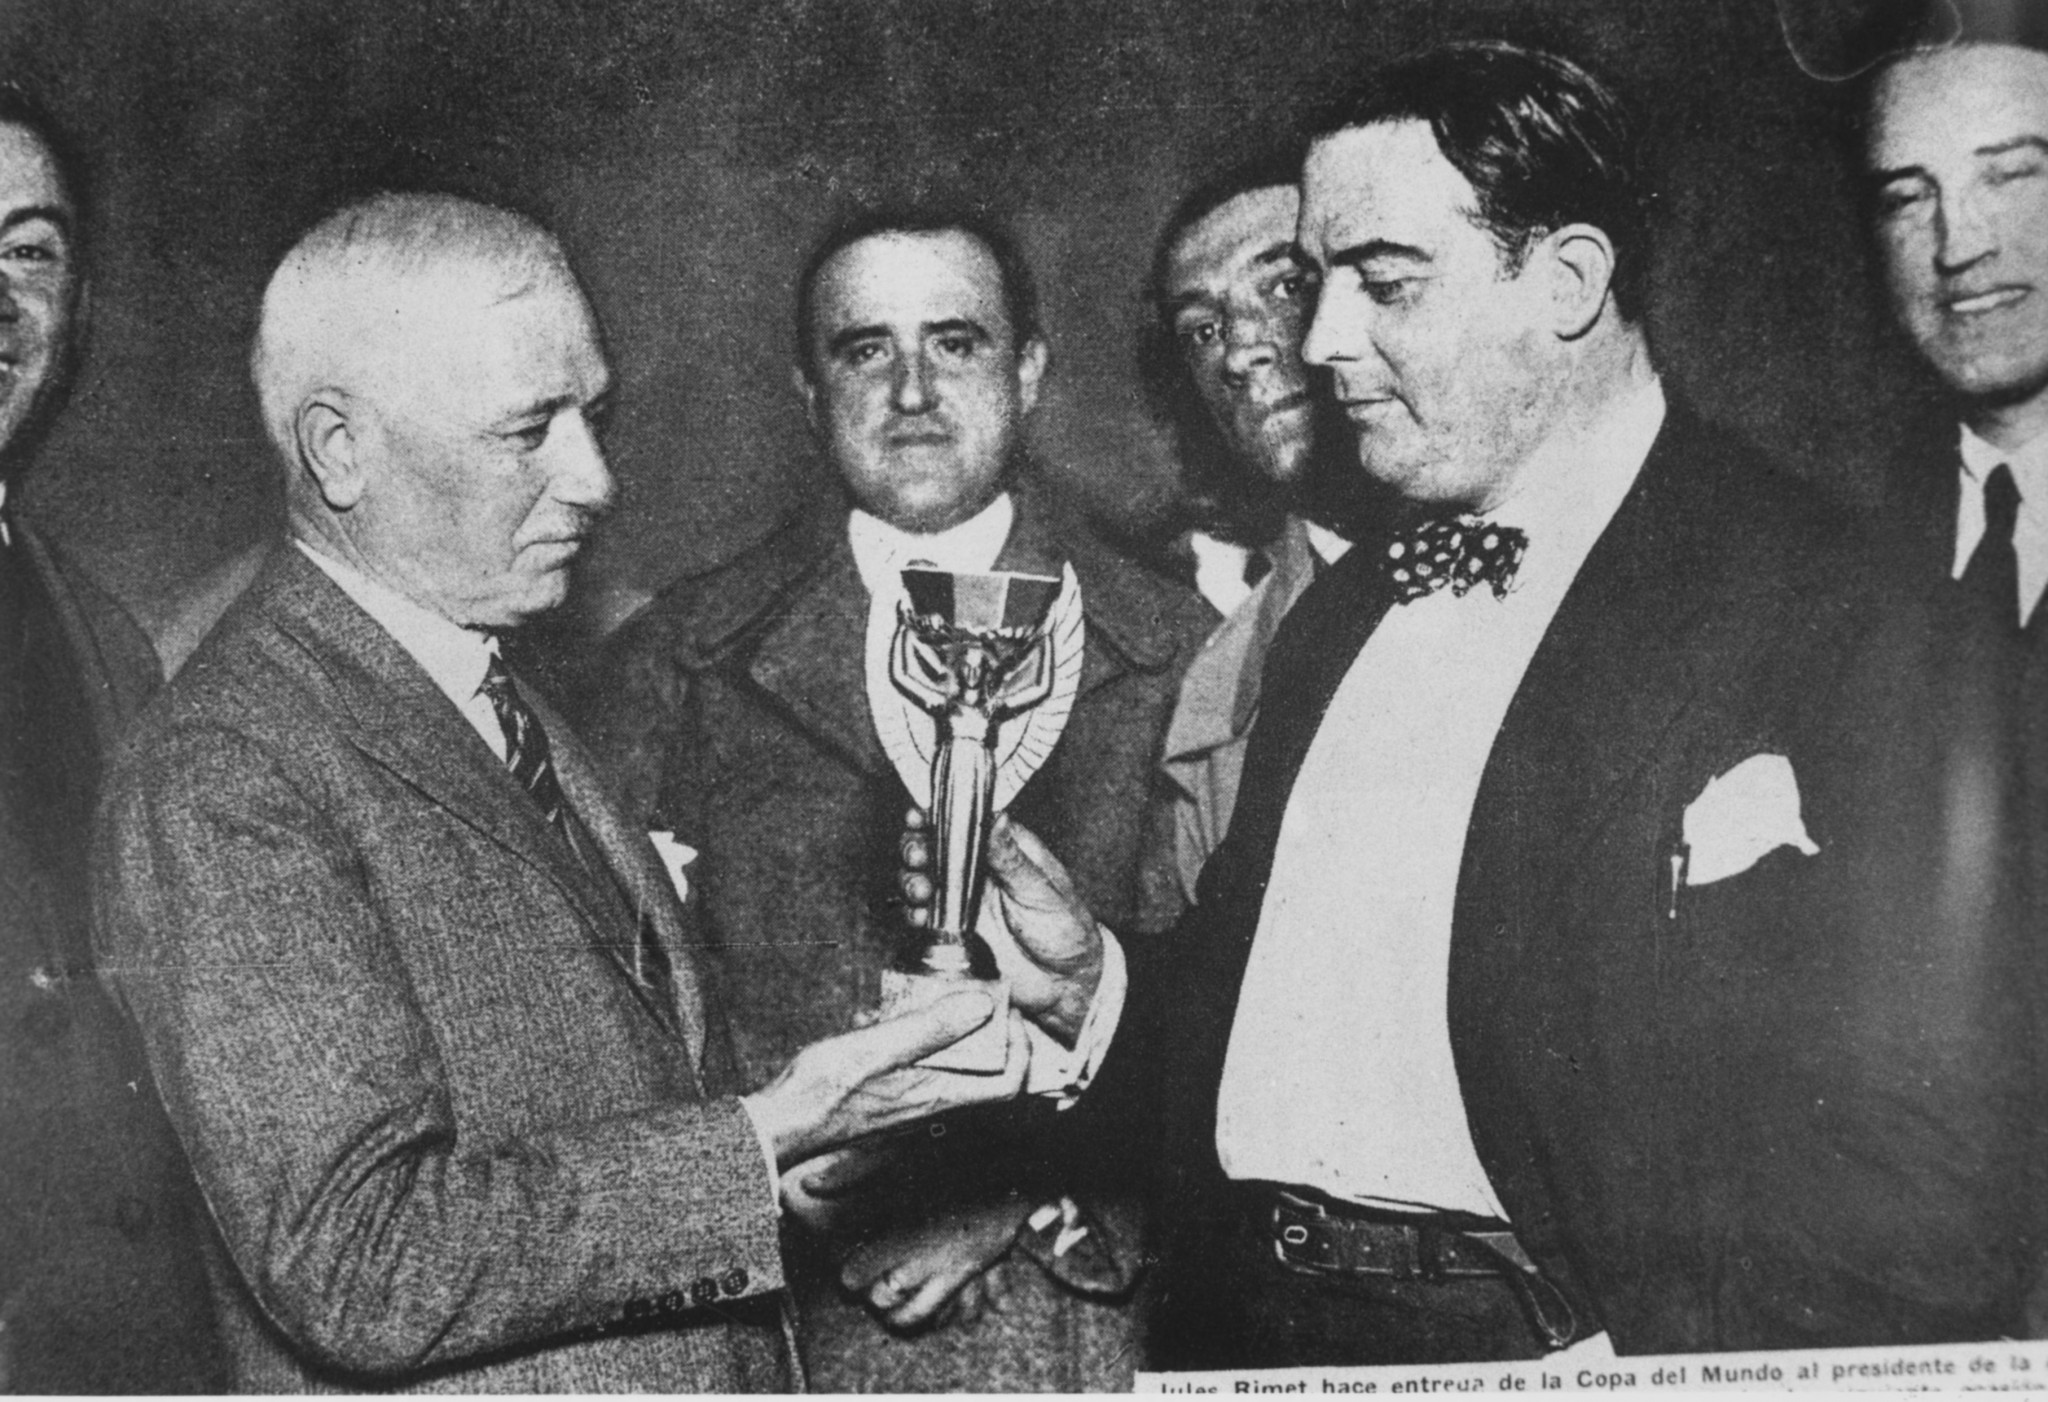 Jules Rimet, FIFA President, presents the 1930 trophy to Dr Paul Jude, the President of the Uruguayan Football Association - a key year in the history of the game ©Getty Images